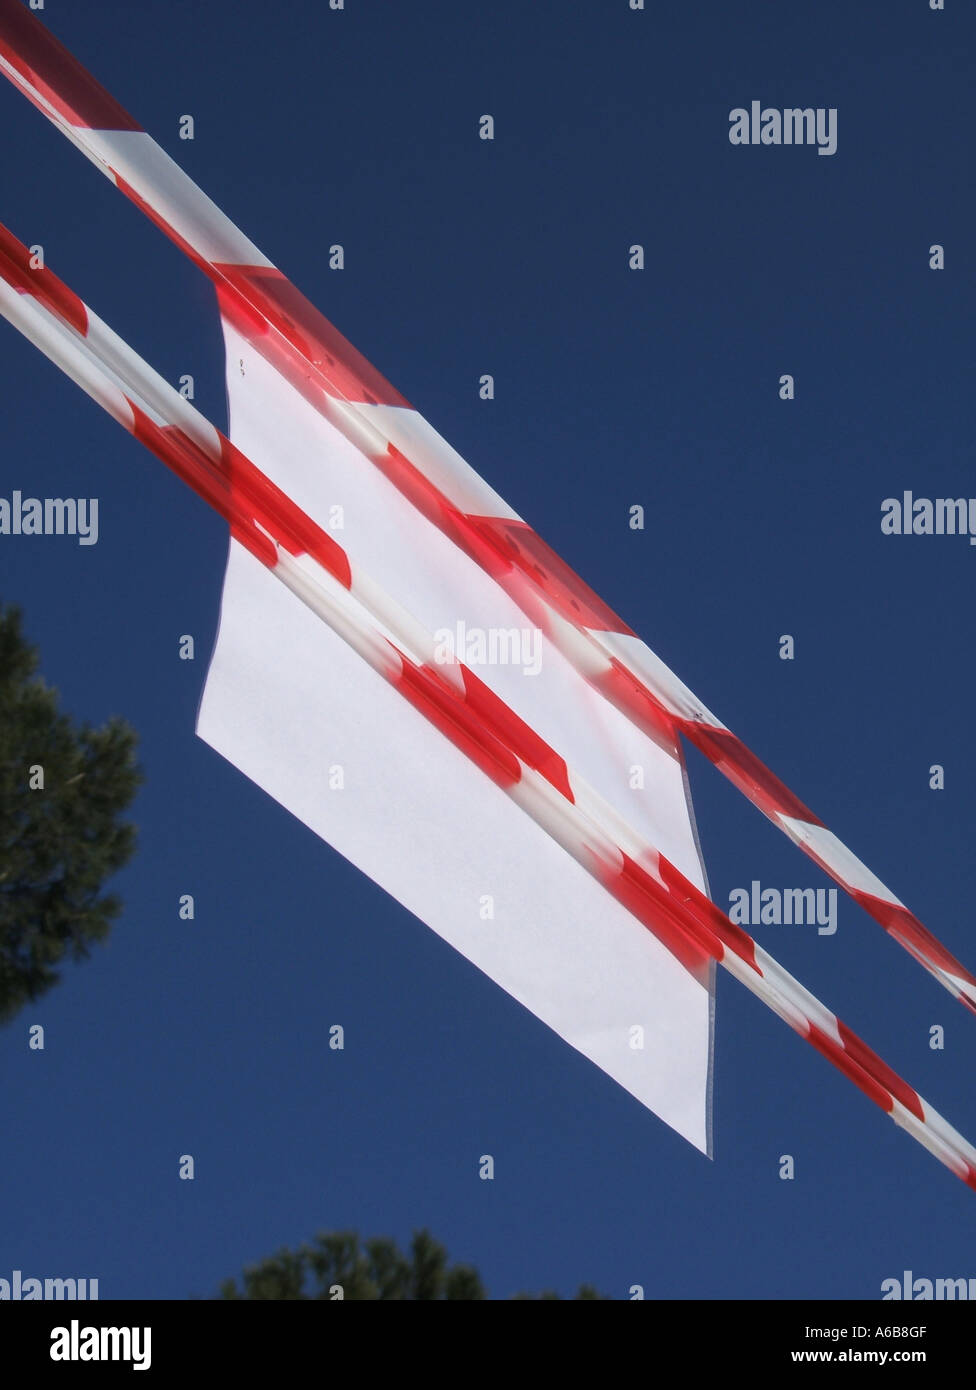 Red White Barrier Warning Tape Stock Photos & Red White